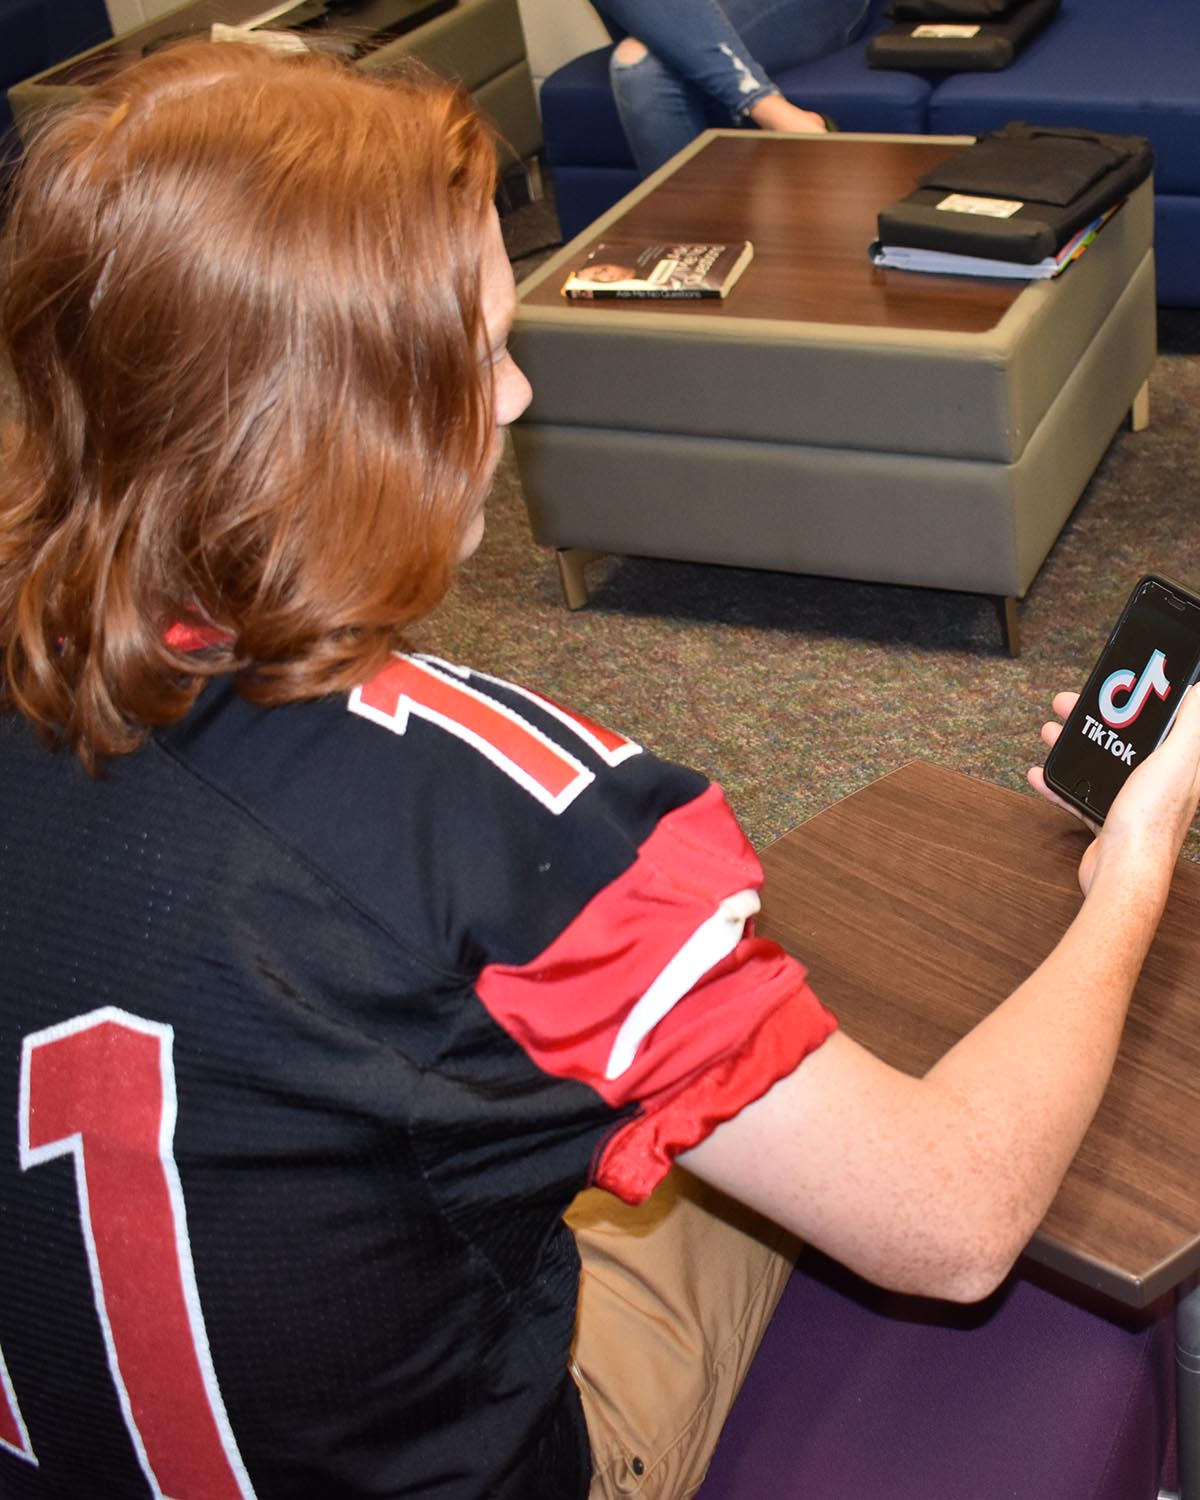 An SLHS student spends time accessing TikTok.